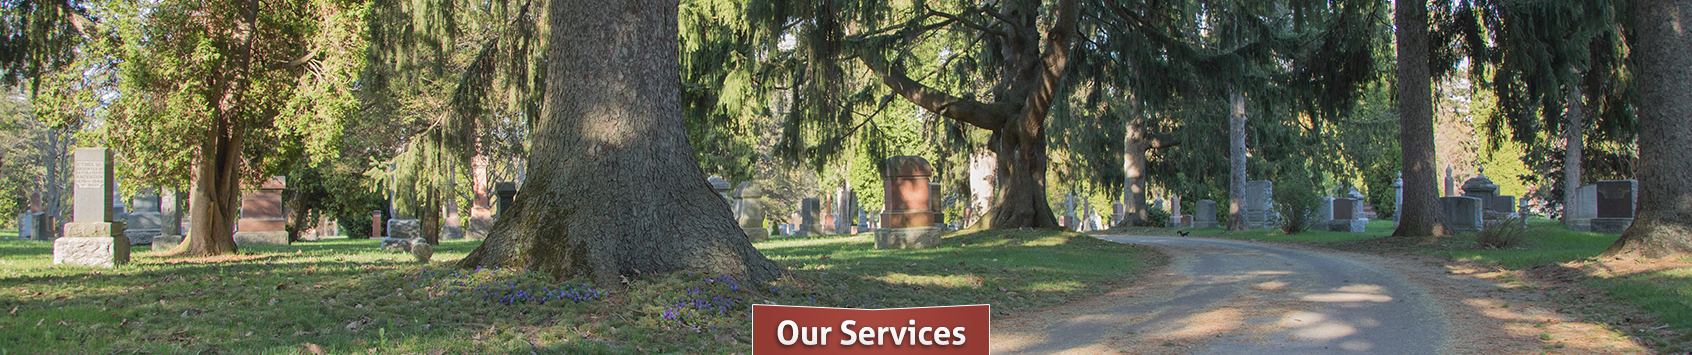 woodlawn memorial guelph our services